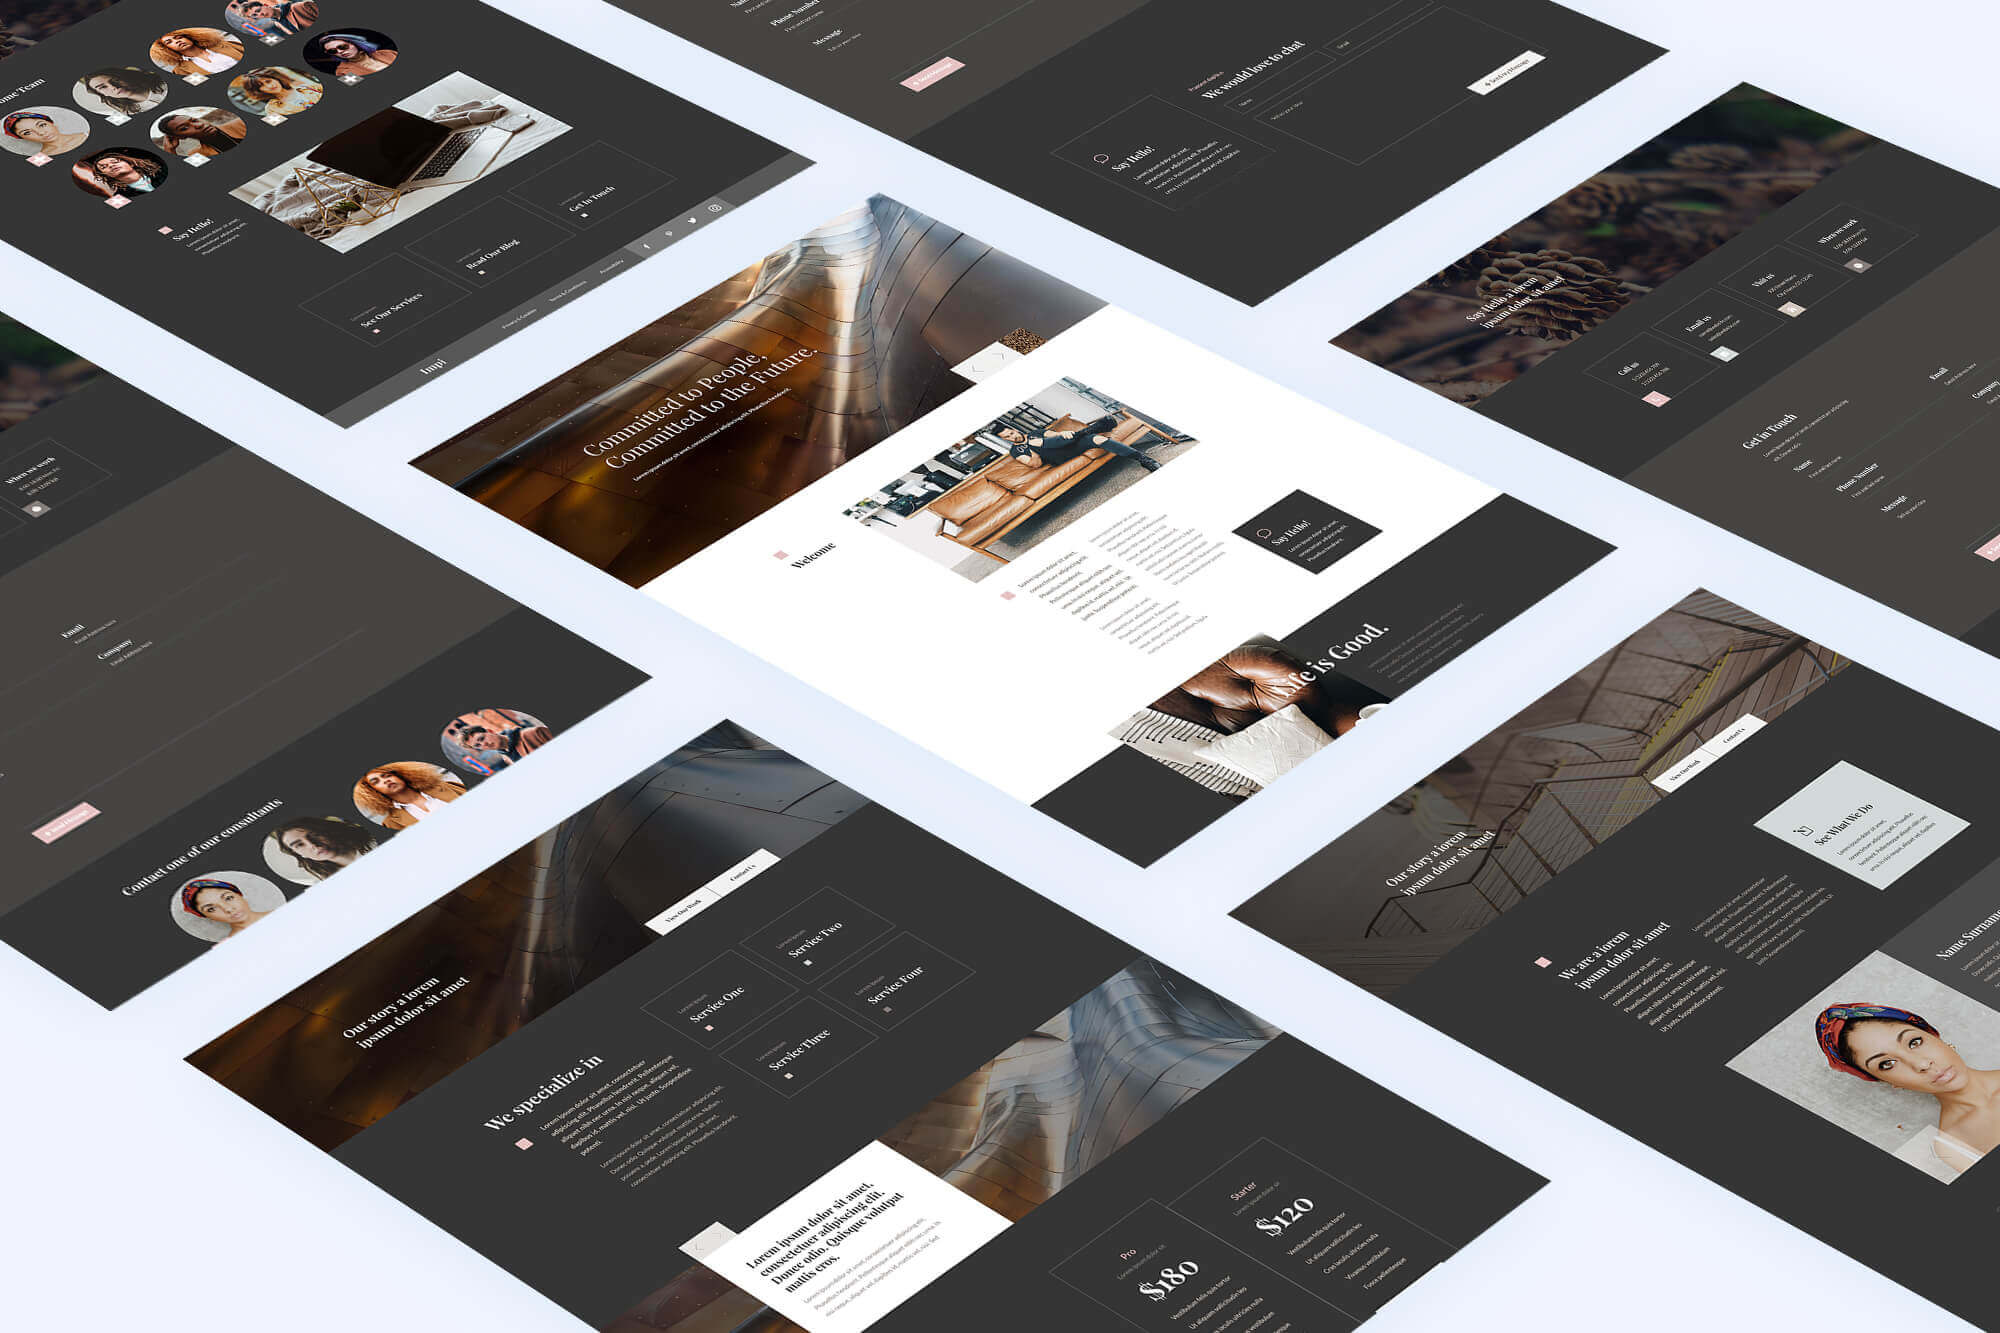 39 new Divi modules + 10 new Divi page layouts added to the Divi Den Pro library